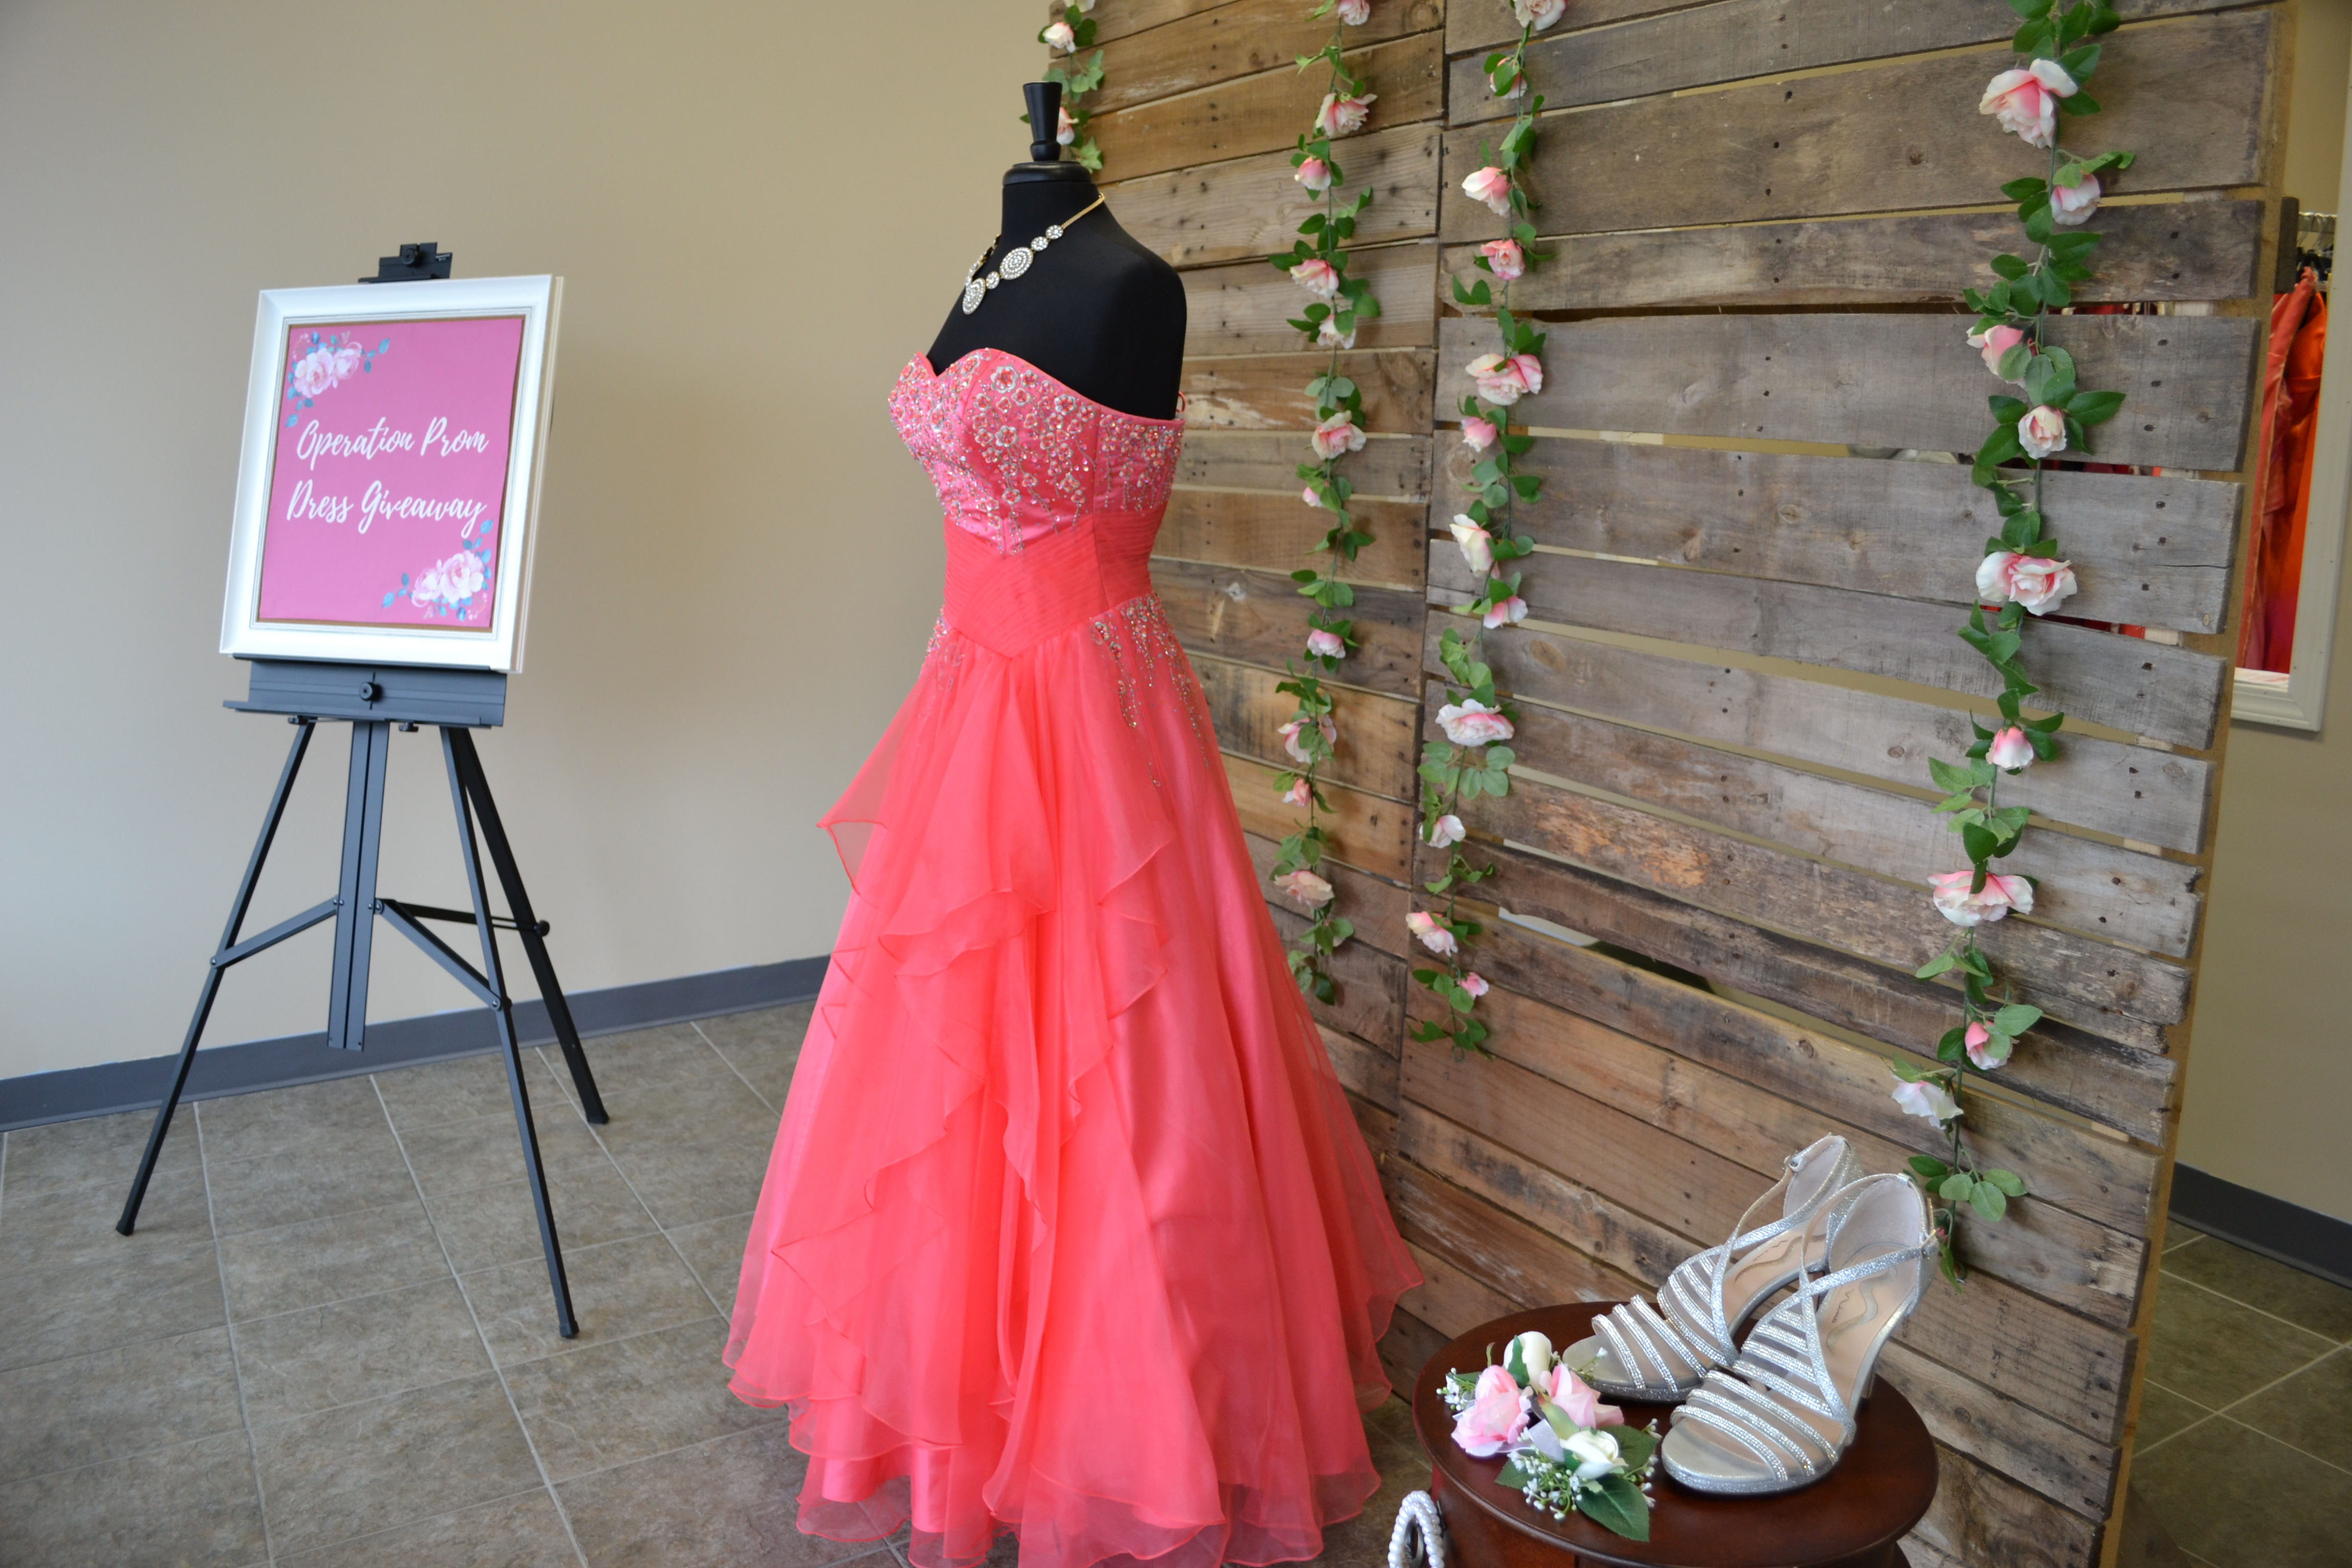 0883d0a06ae4 Prom Dress Giveaway - Hope Center of LeRoy